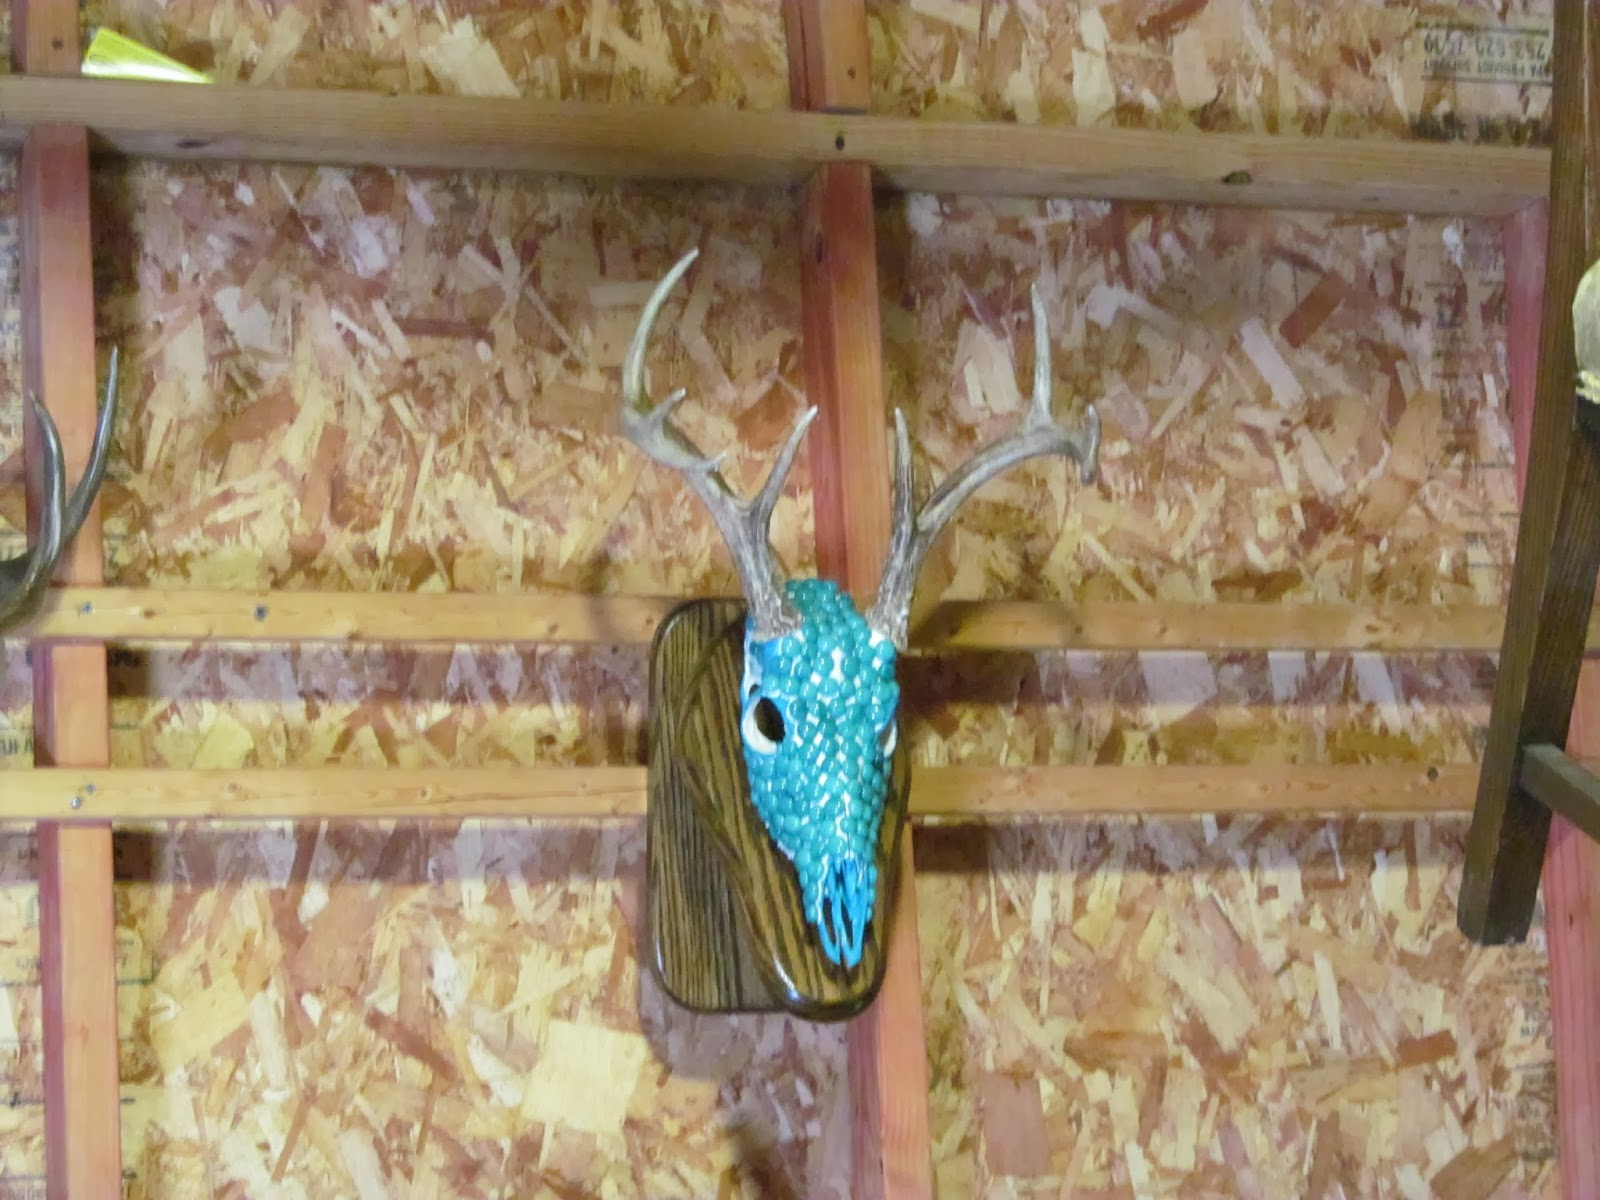 blue stone-studded steer skull with horns